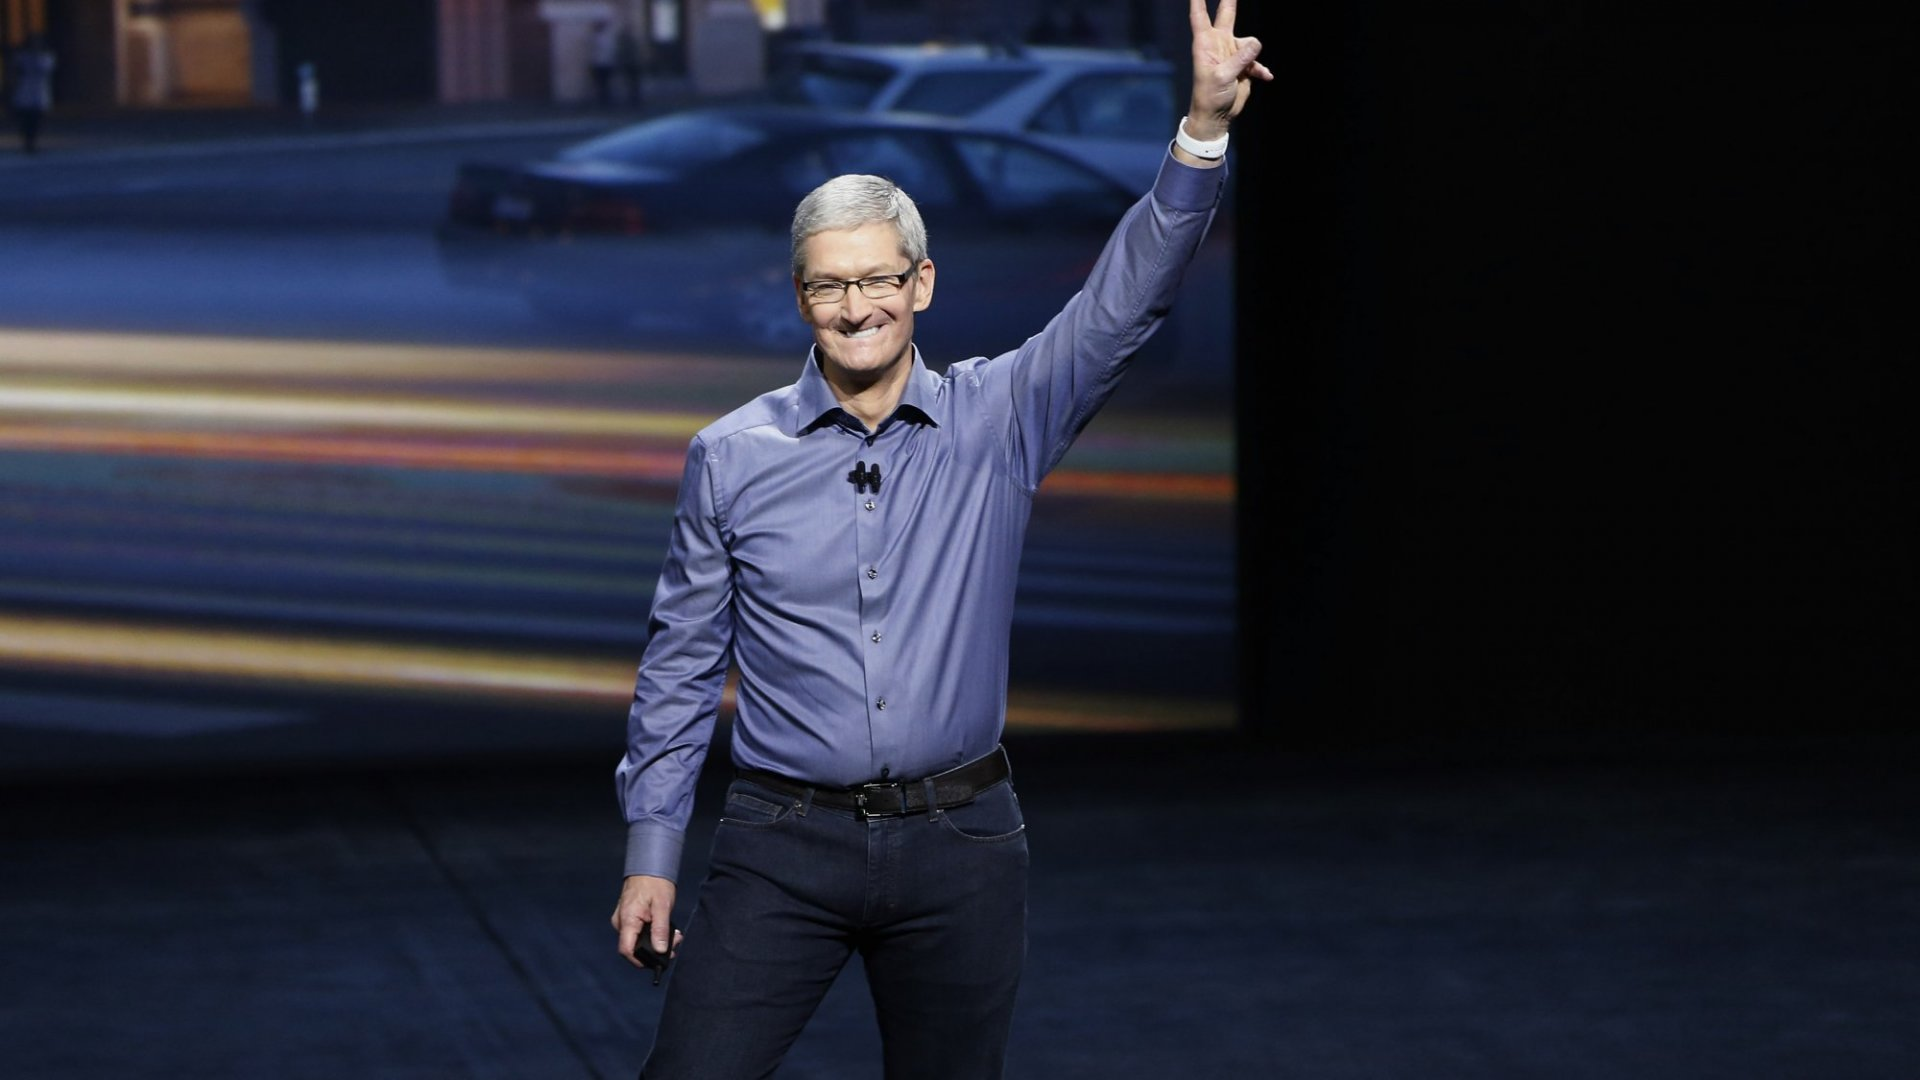 Apple's $1,000 iPhone Taught Us A Very Important Business Lesson